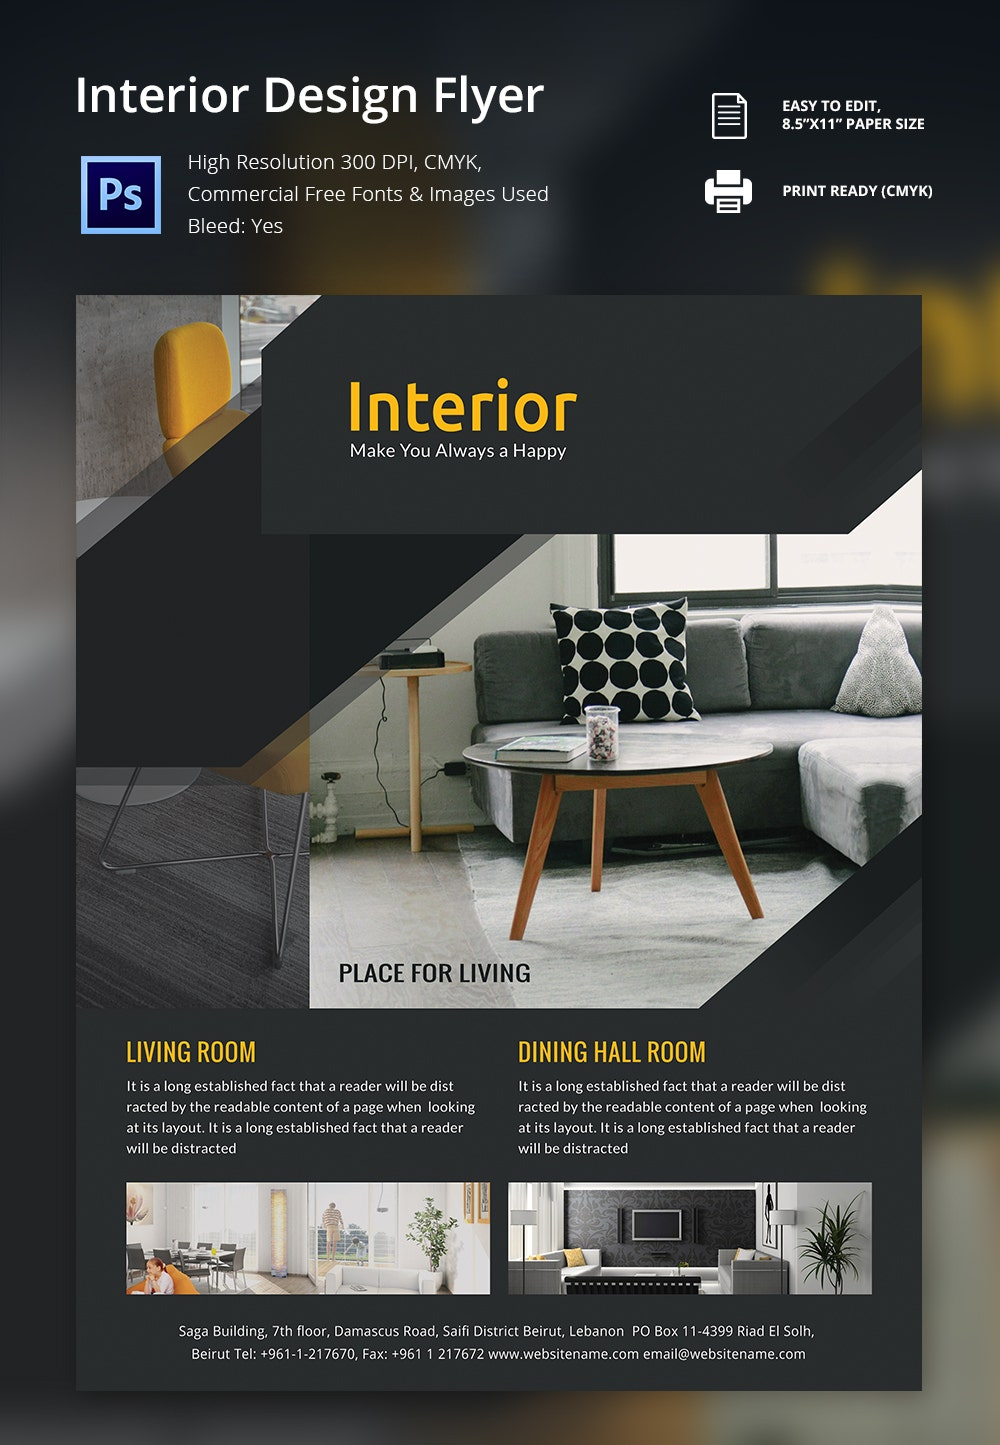 Interior design flyer template 25 free psd ai vector for Interior designs software free download